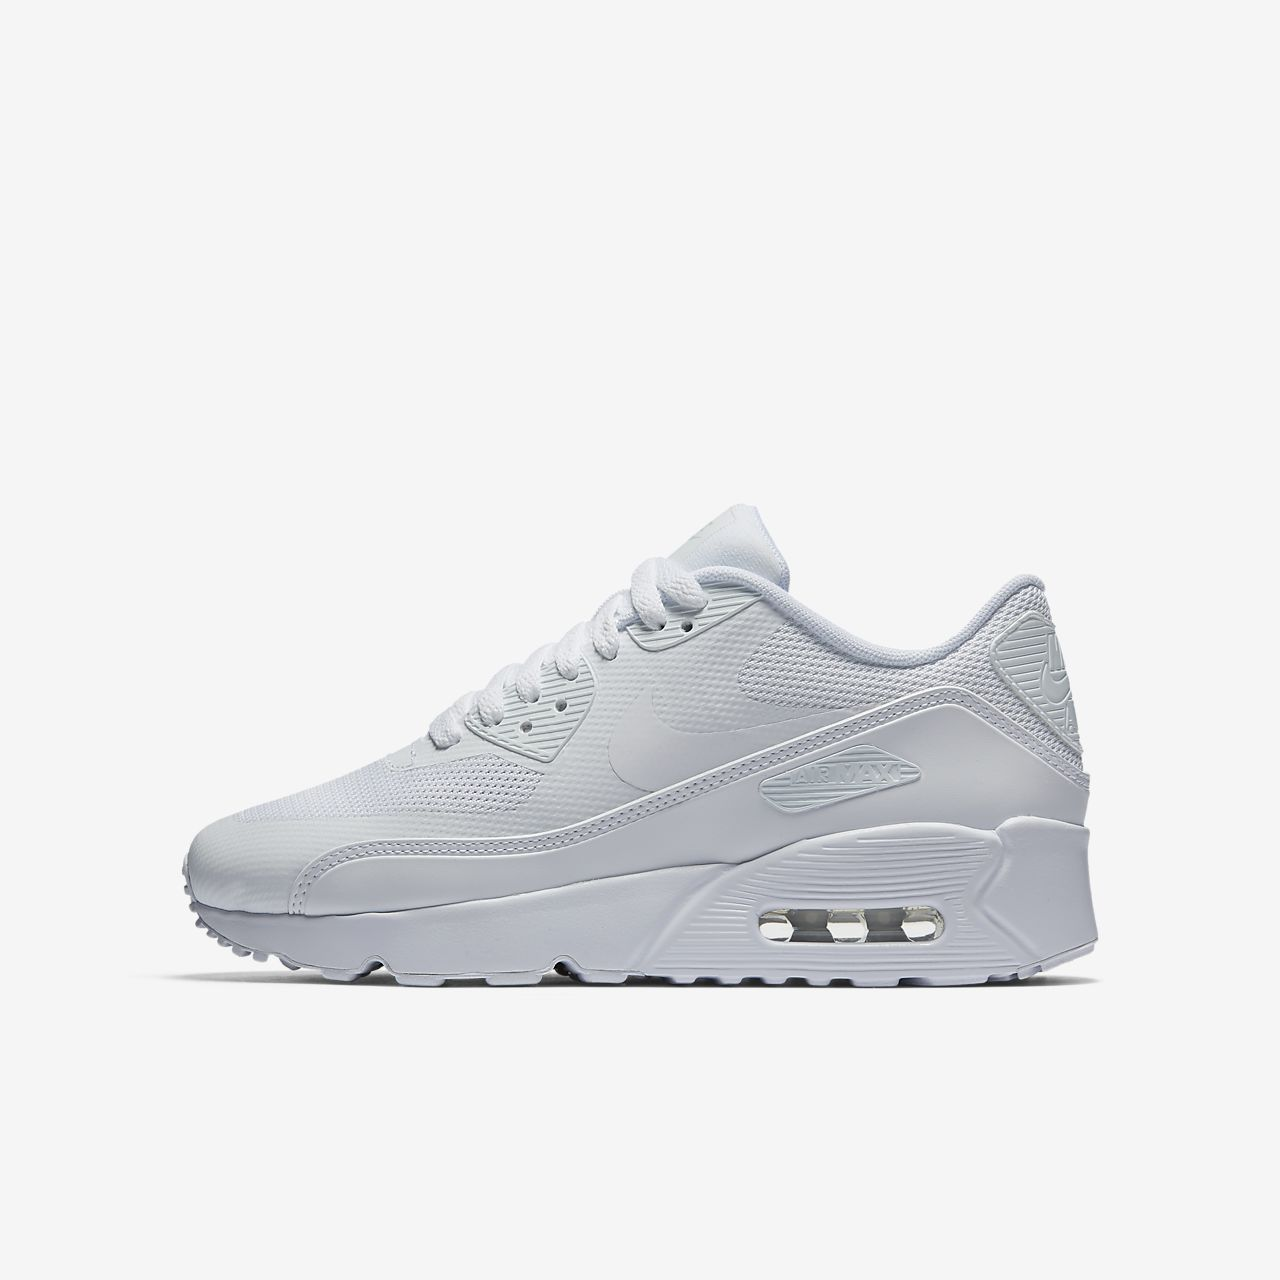 nike wmns air max 90 ultra 2.0 ease on down the road